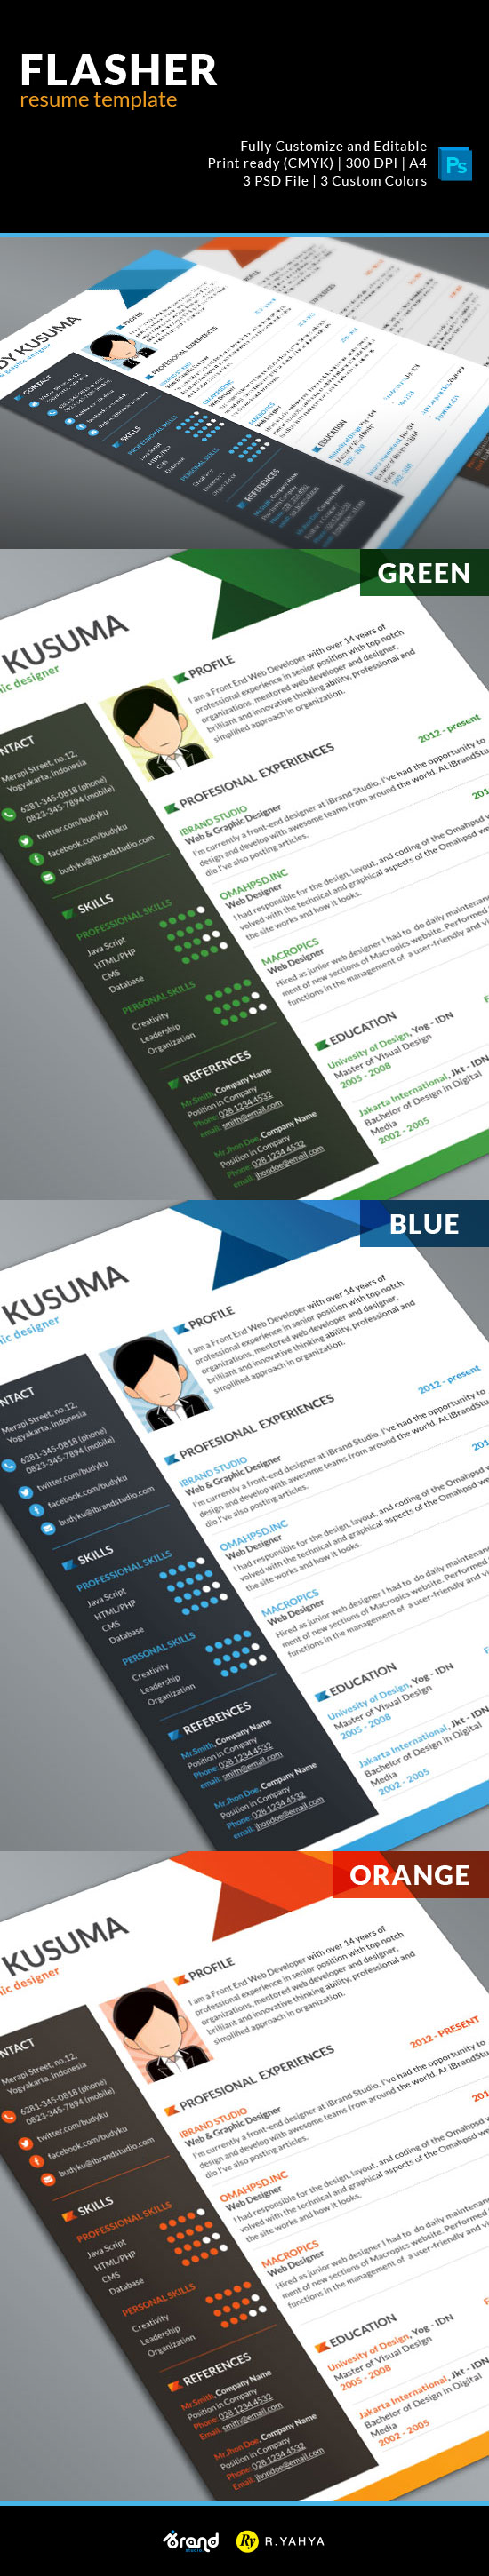 Free Resume-CV Template For Graphic Designers 2015